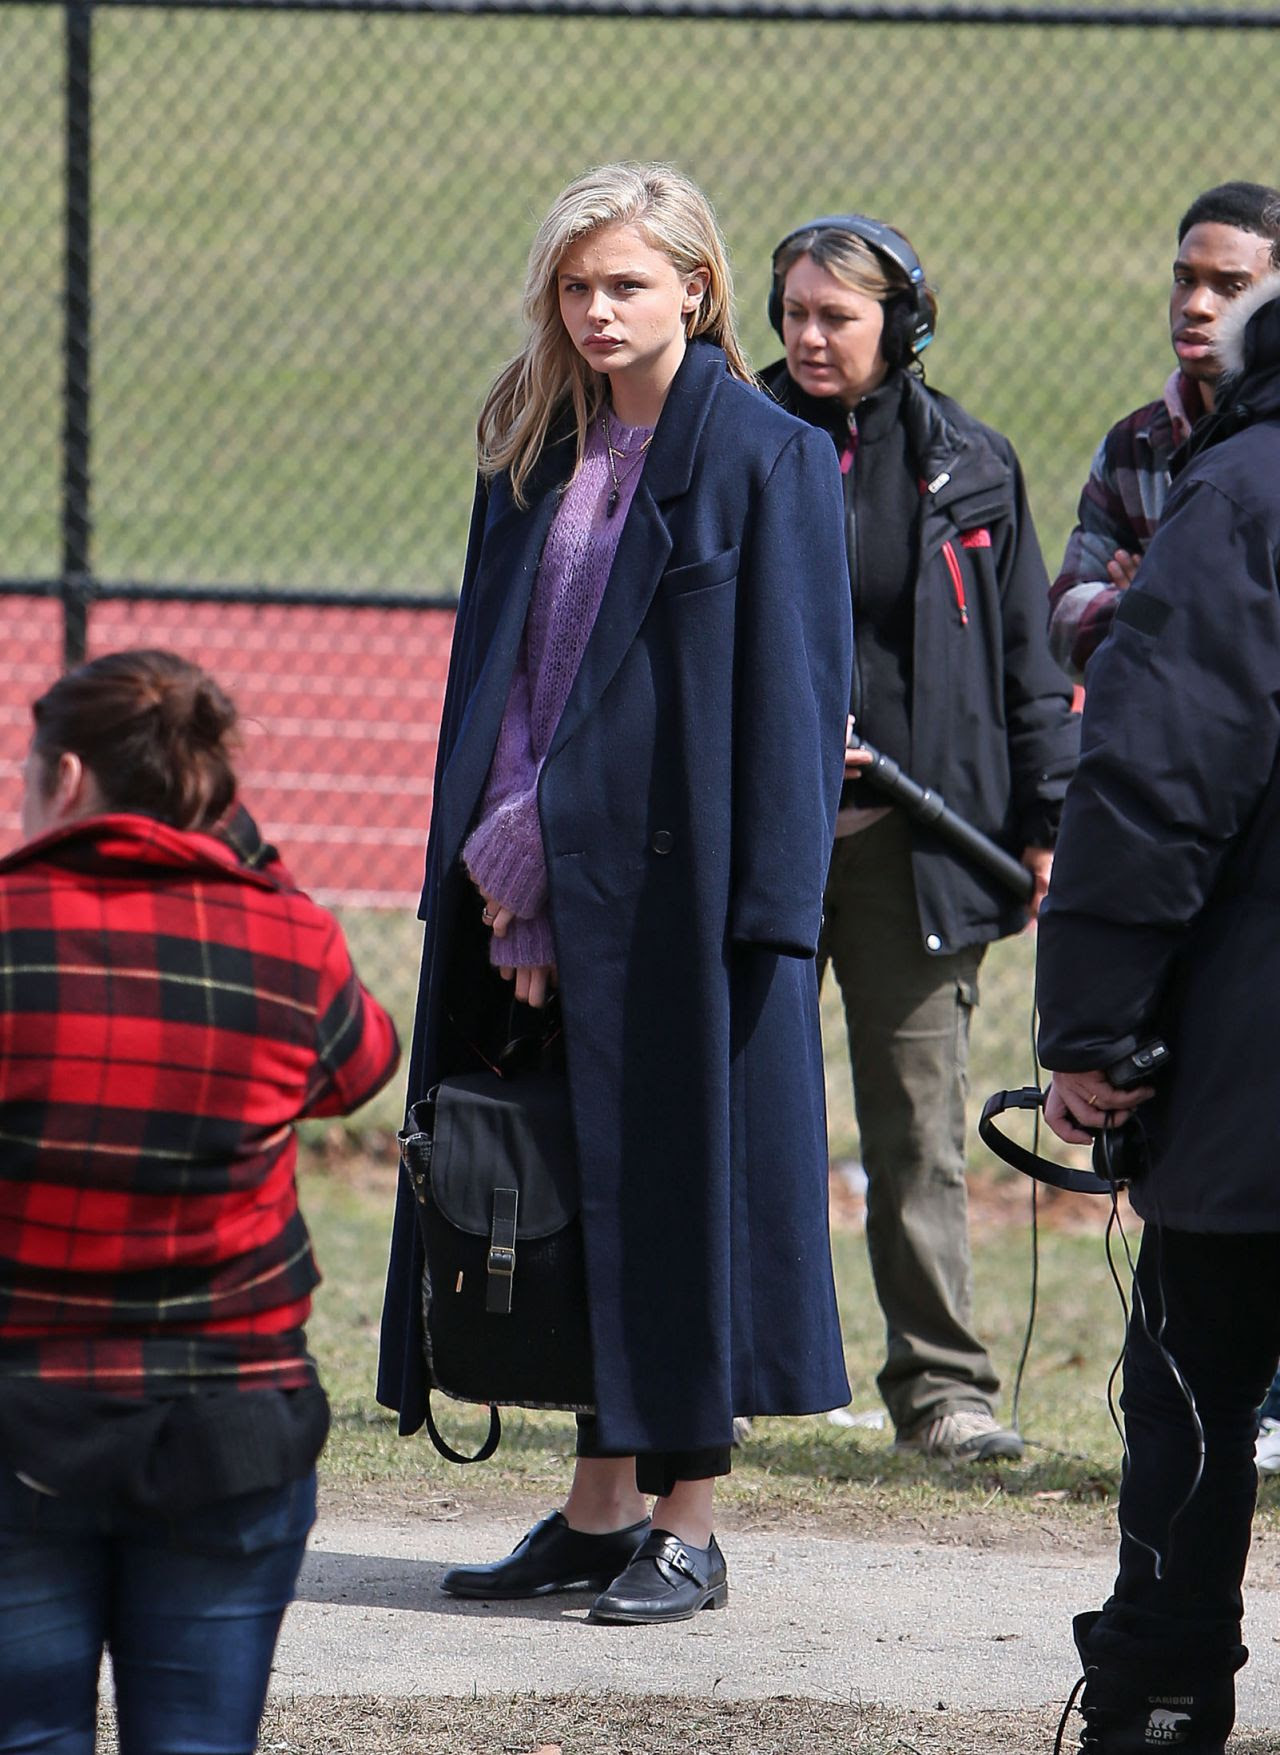 http://celebmafia.com/wp-content/uploads/2015/04/chloe-moretz-set-of-november-criminals-in-providence-rhode-island-april-2015_19.jpg